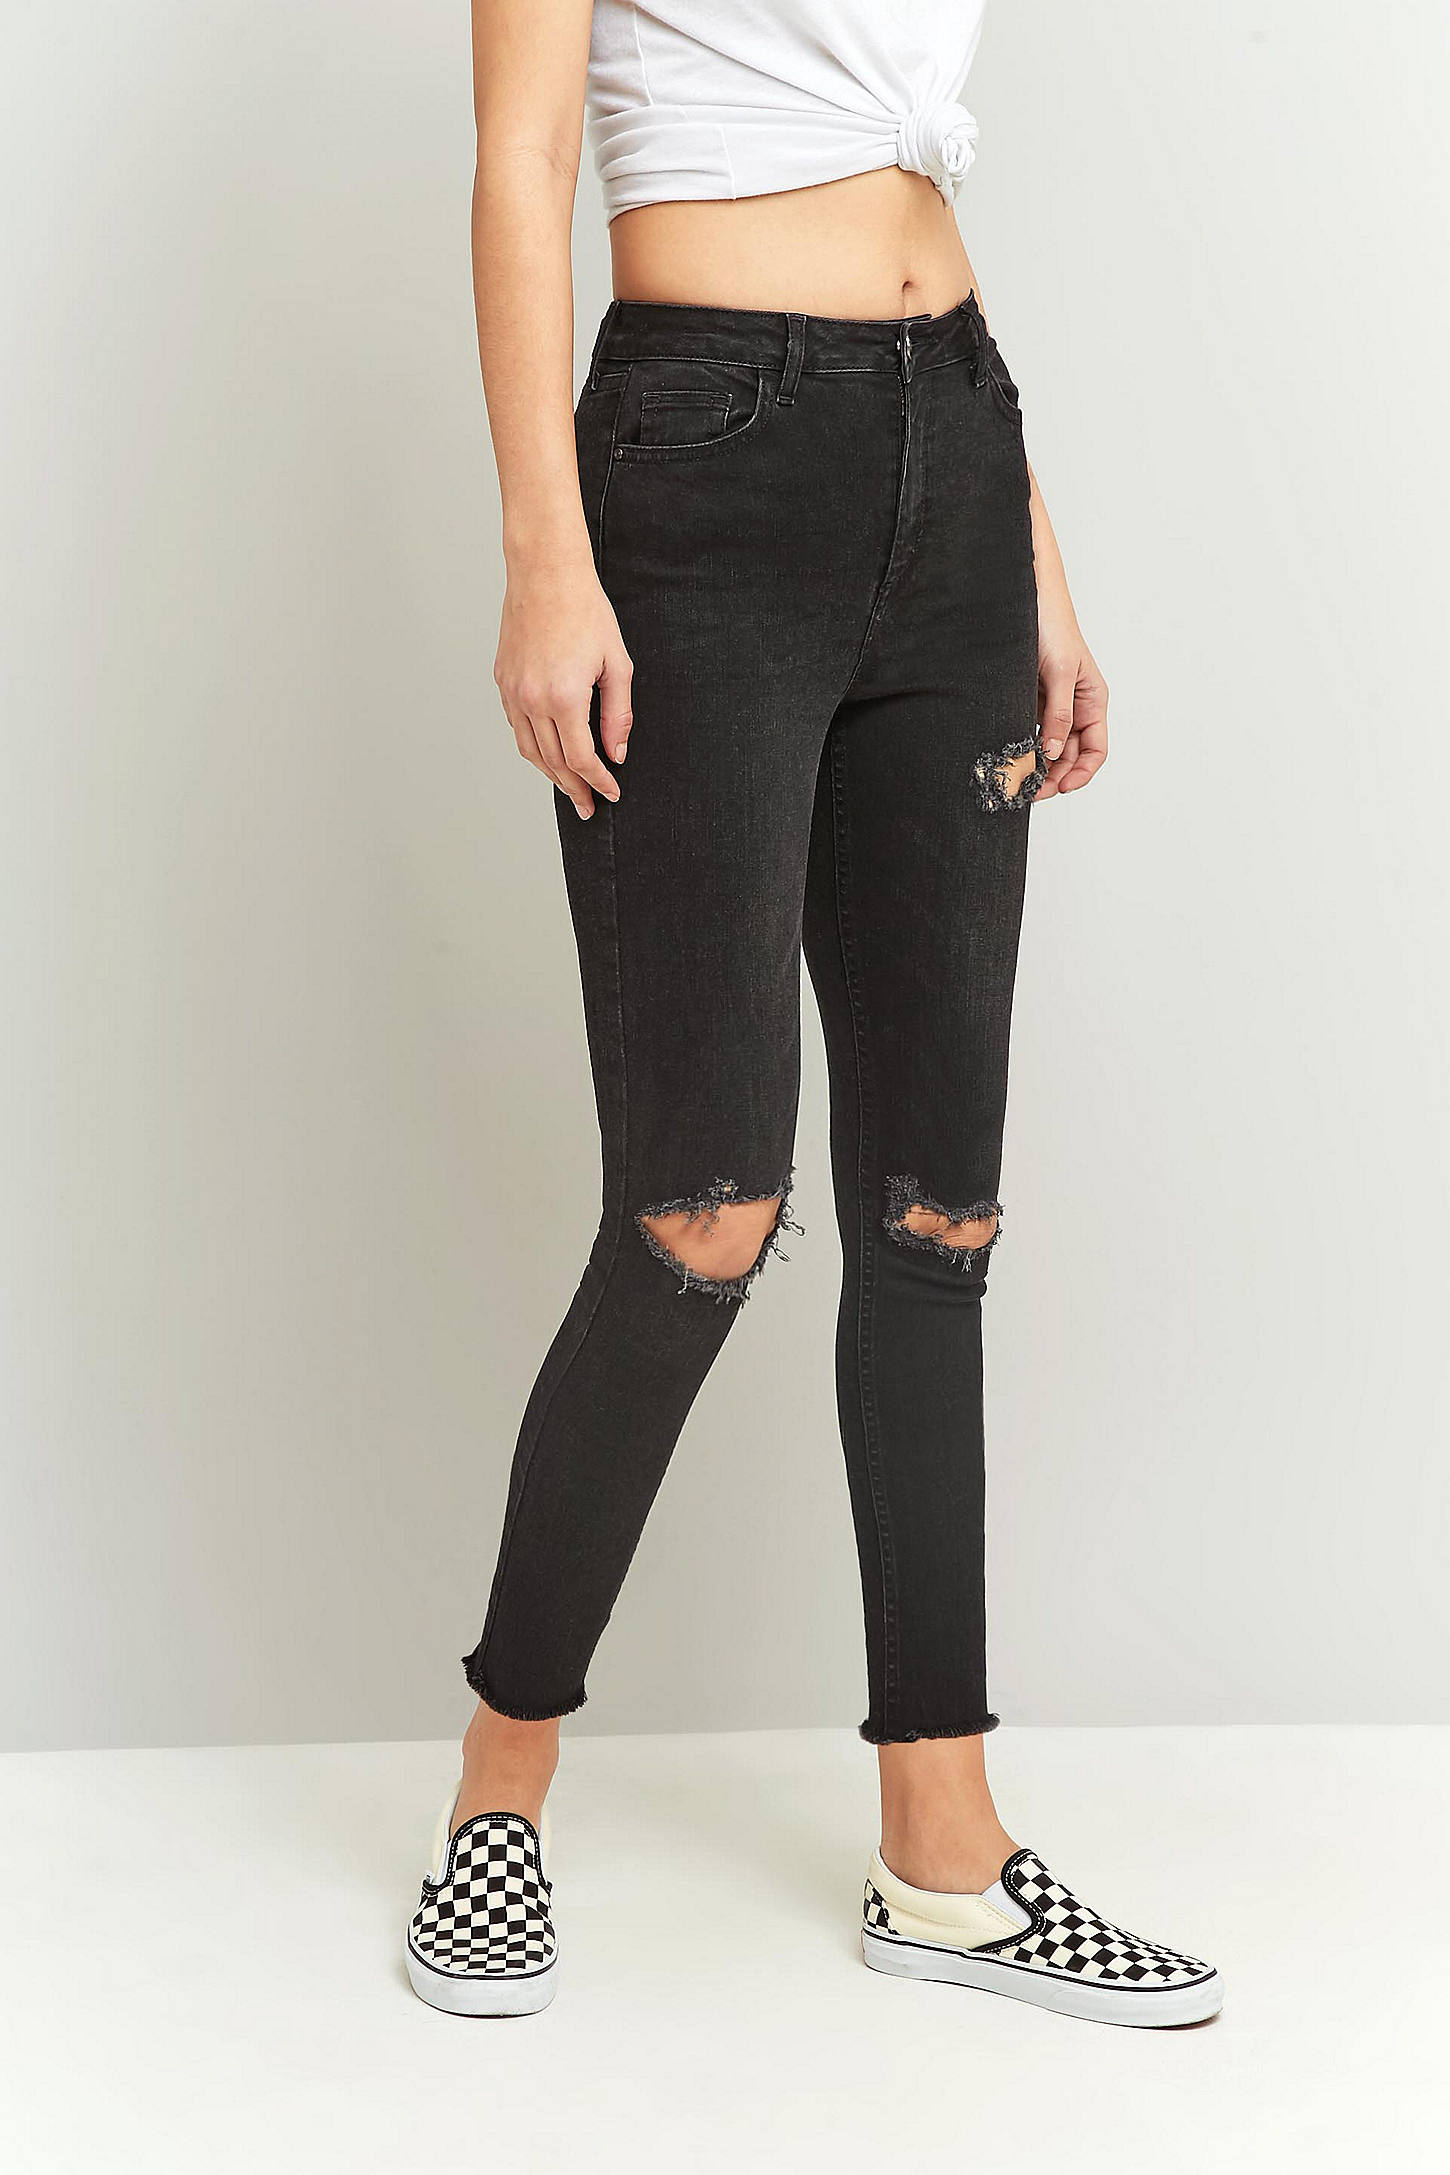 BDG Pine Cropped Destroyed Raw Hem Black Jeans | Urban Outfitters